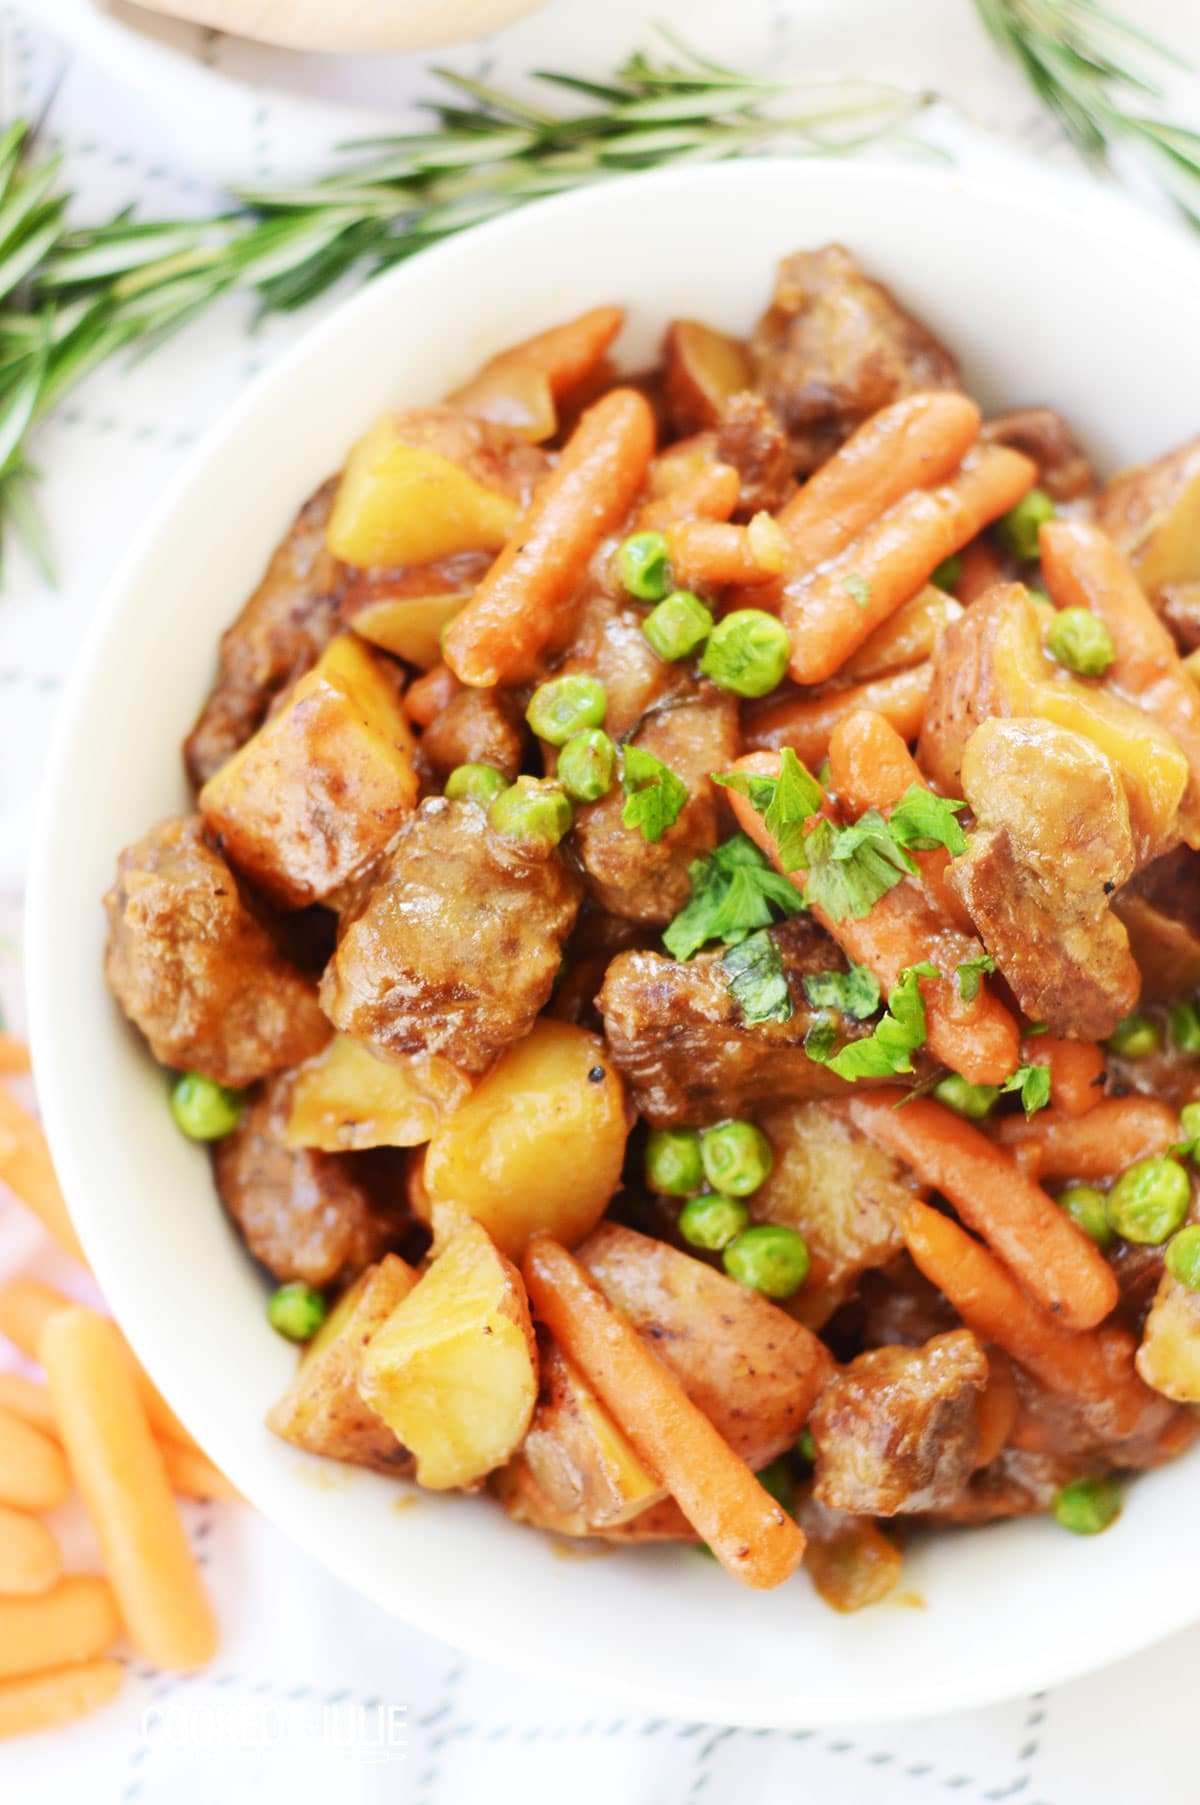 beef stew with parsley in a white bowl and a sprig of rosemary